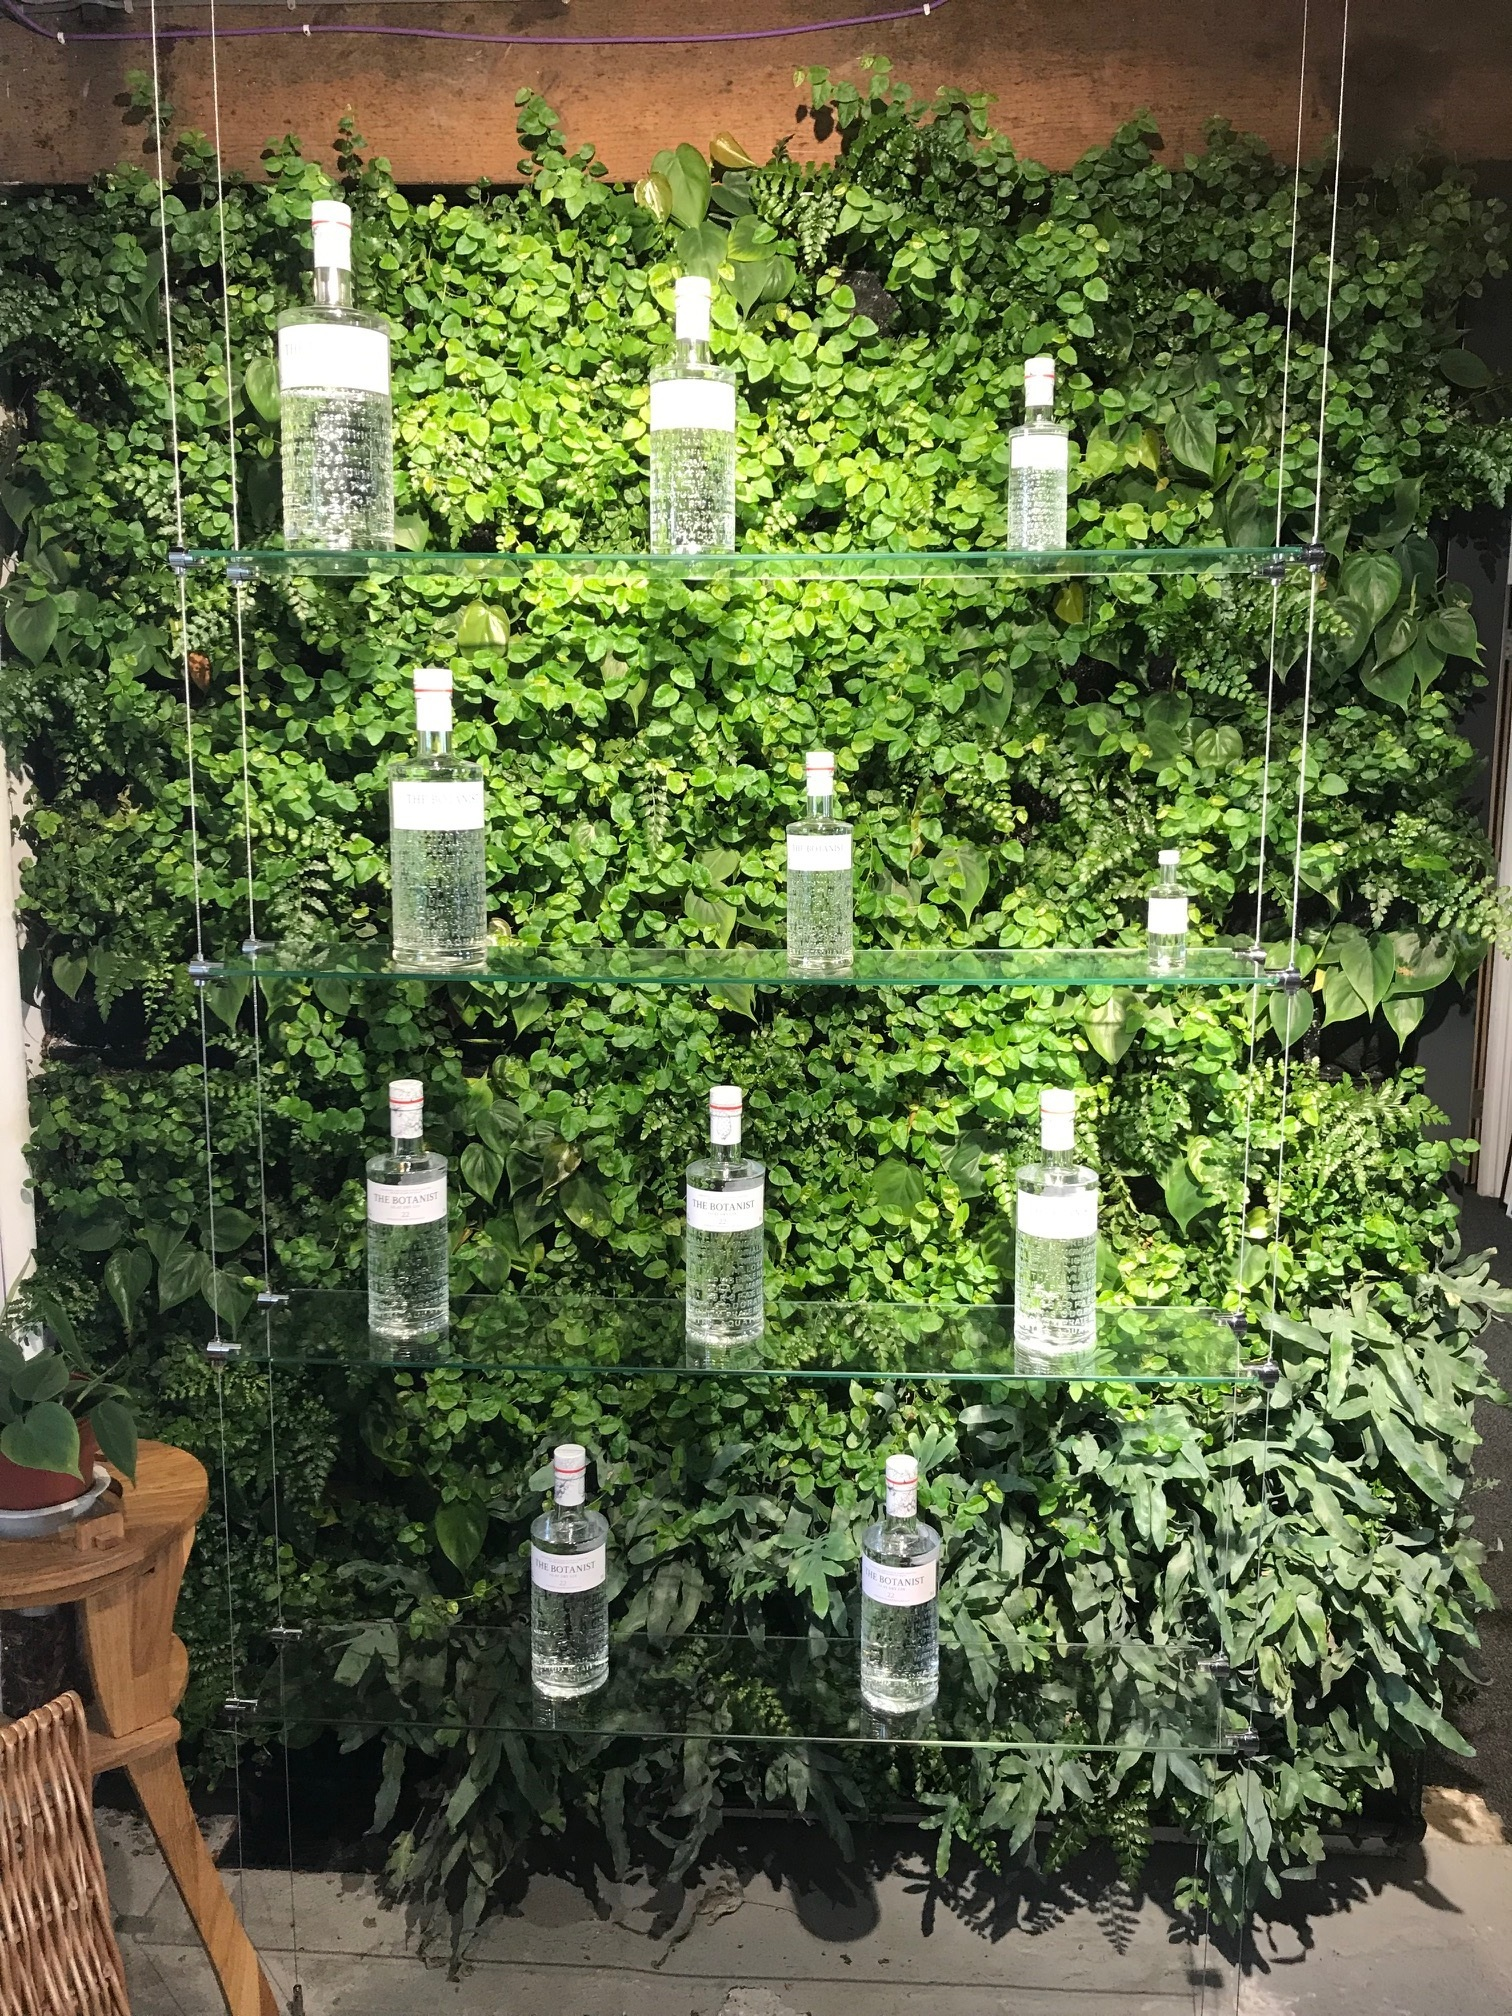 Living Wall for Bruichladdich Distillery Gin Display